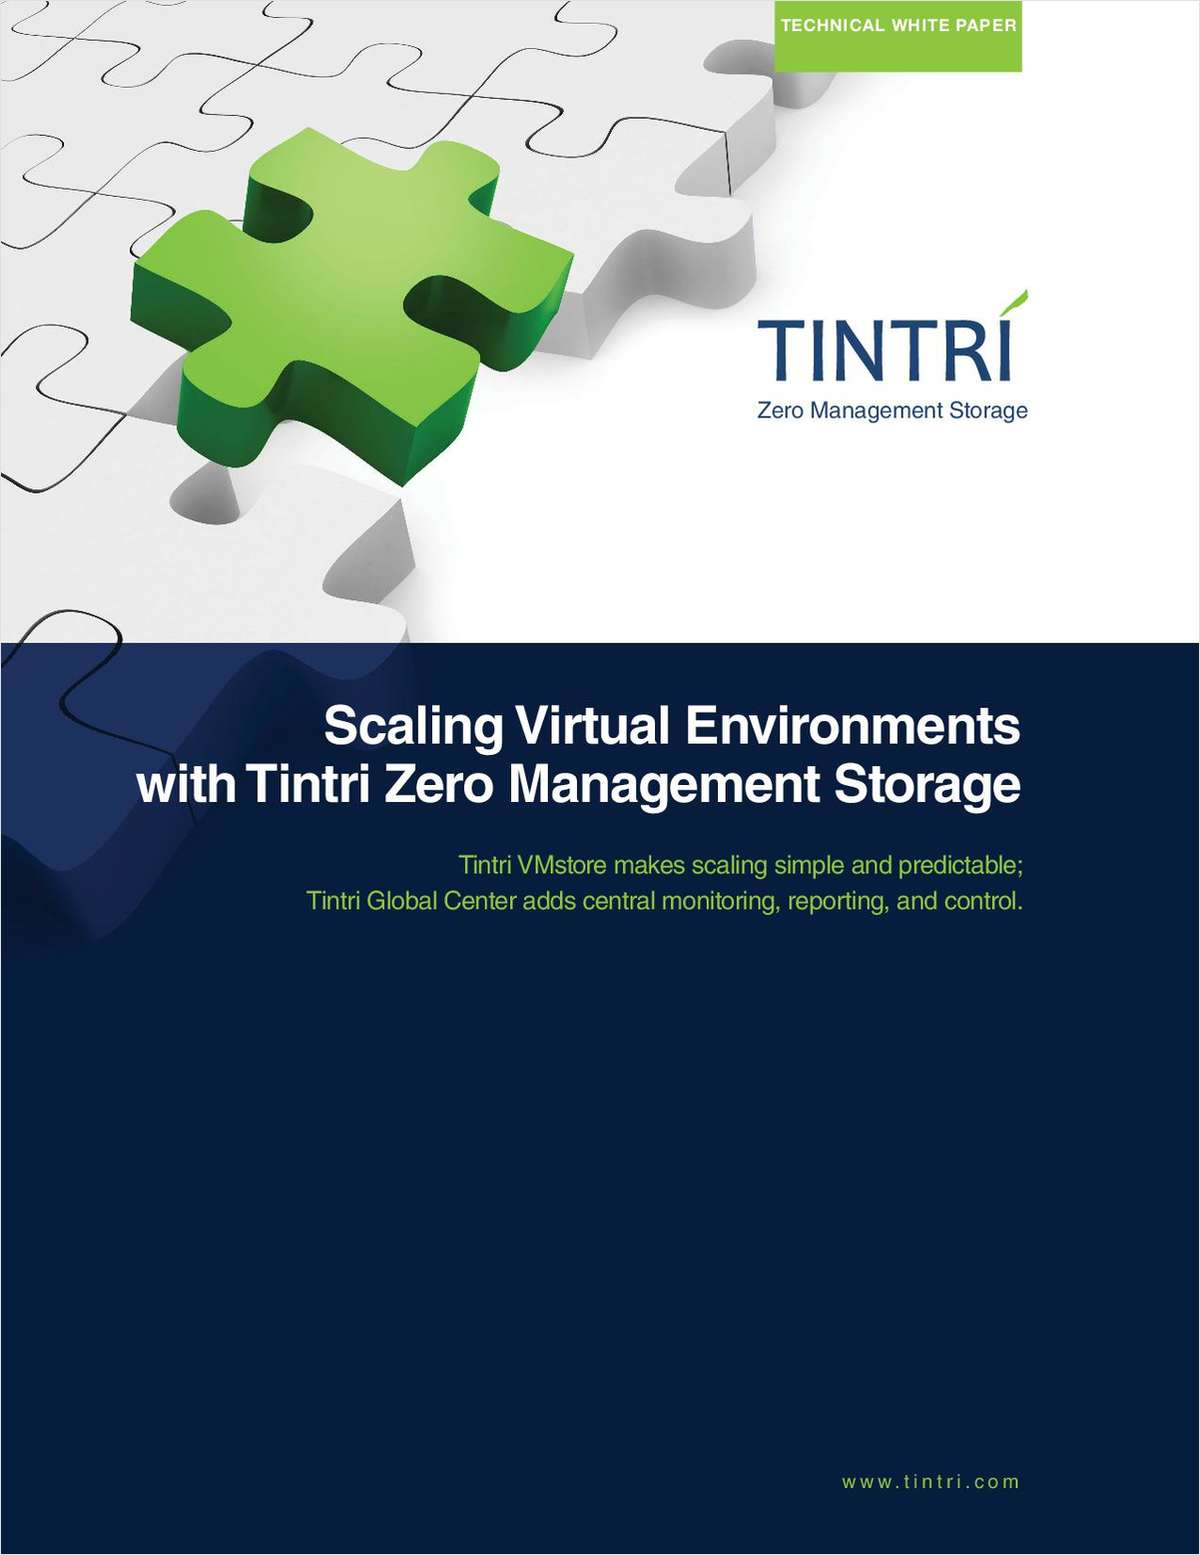 Scaling Storage for VMware Virtualized Environments